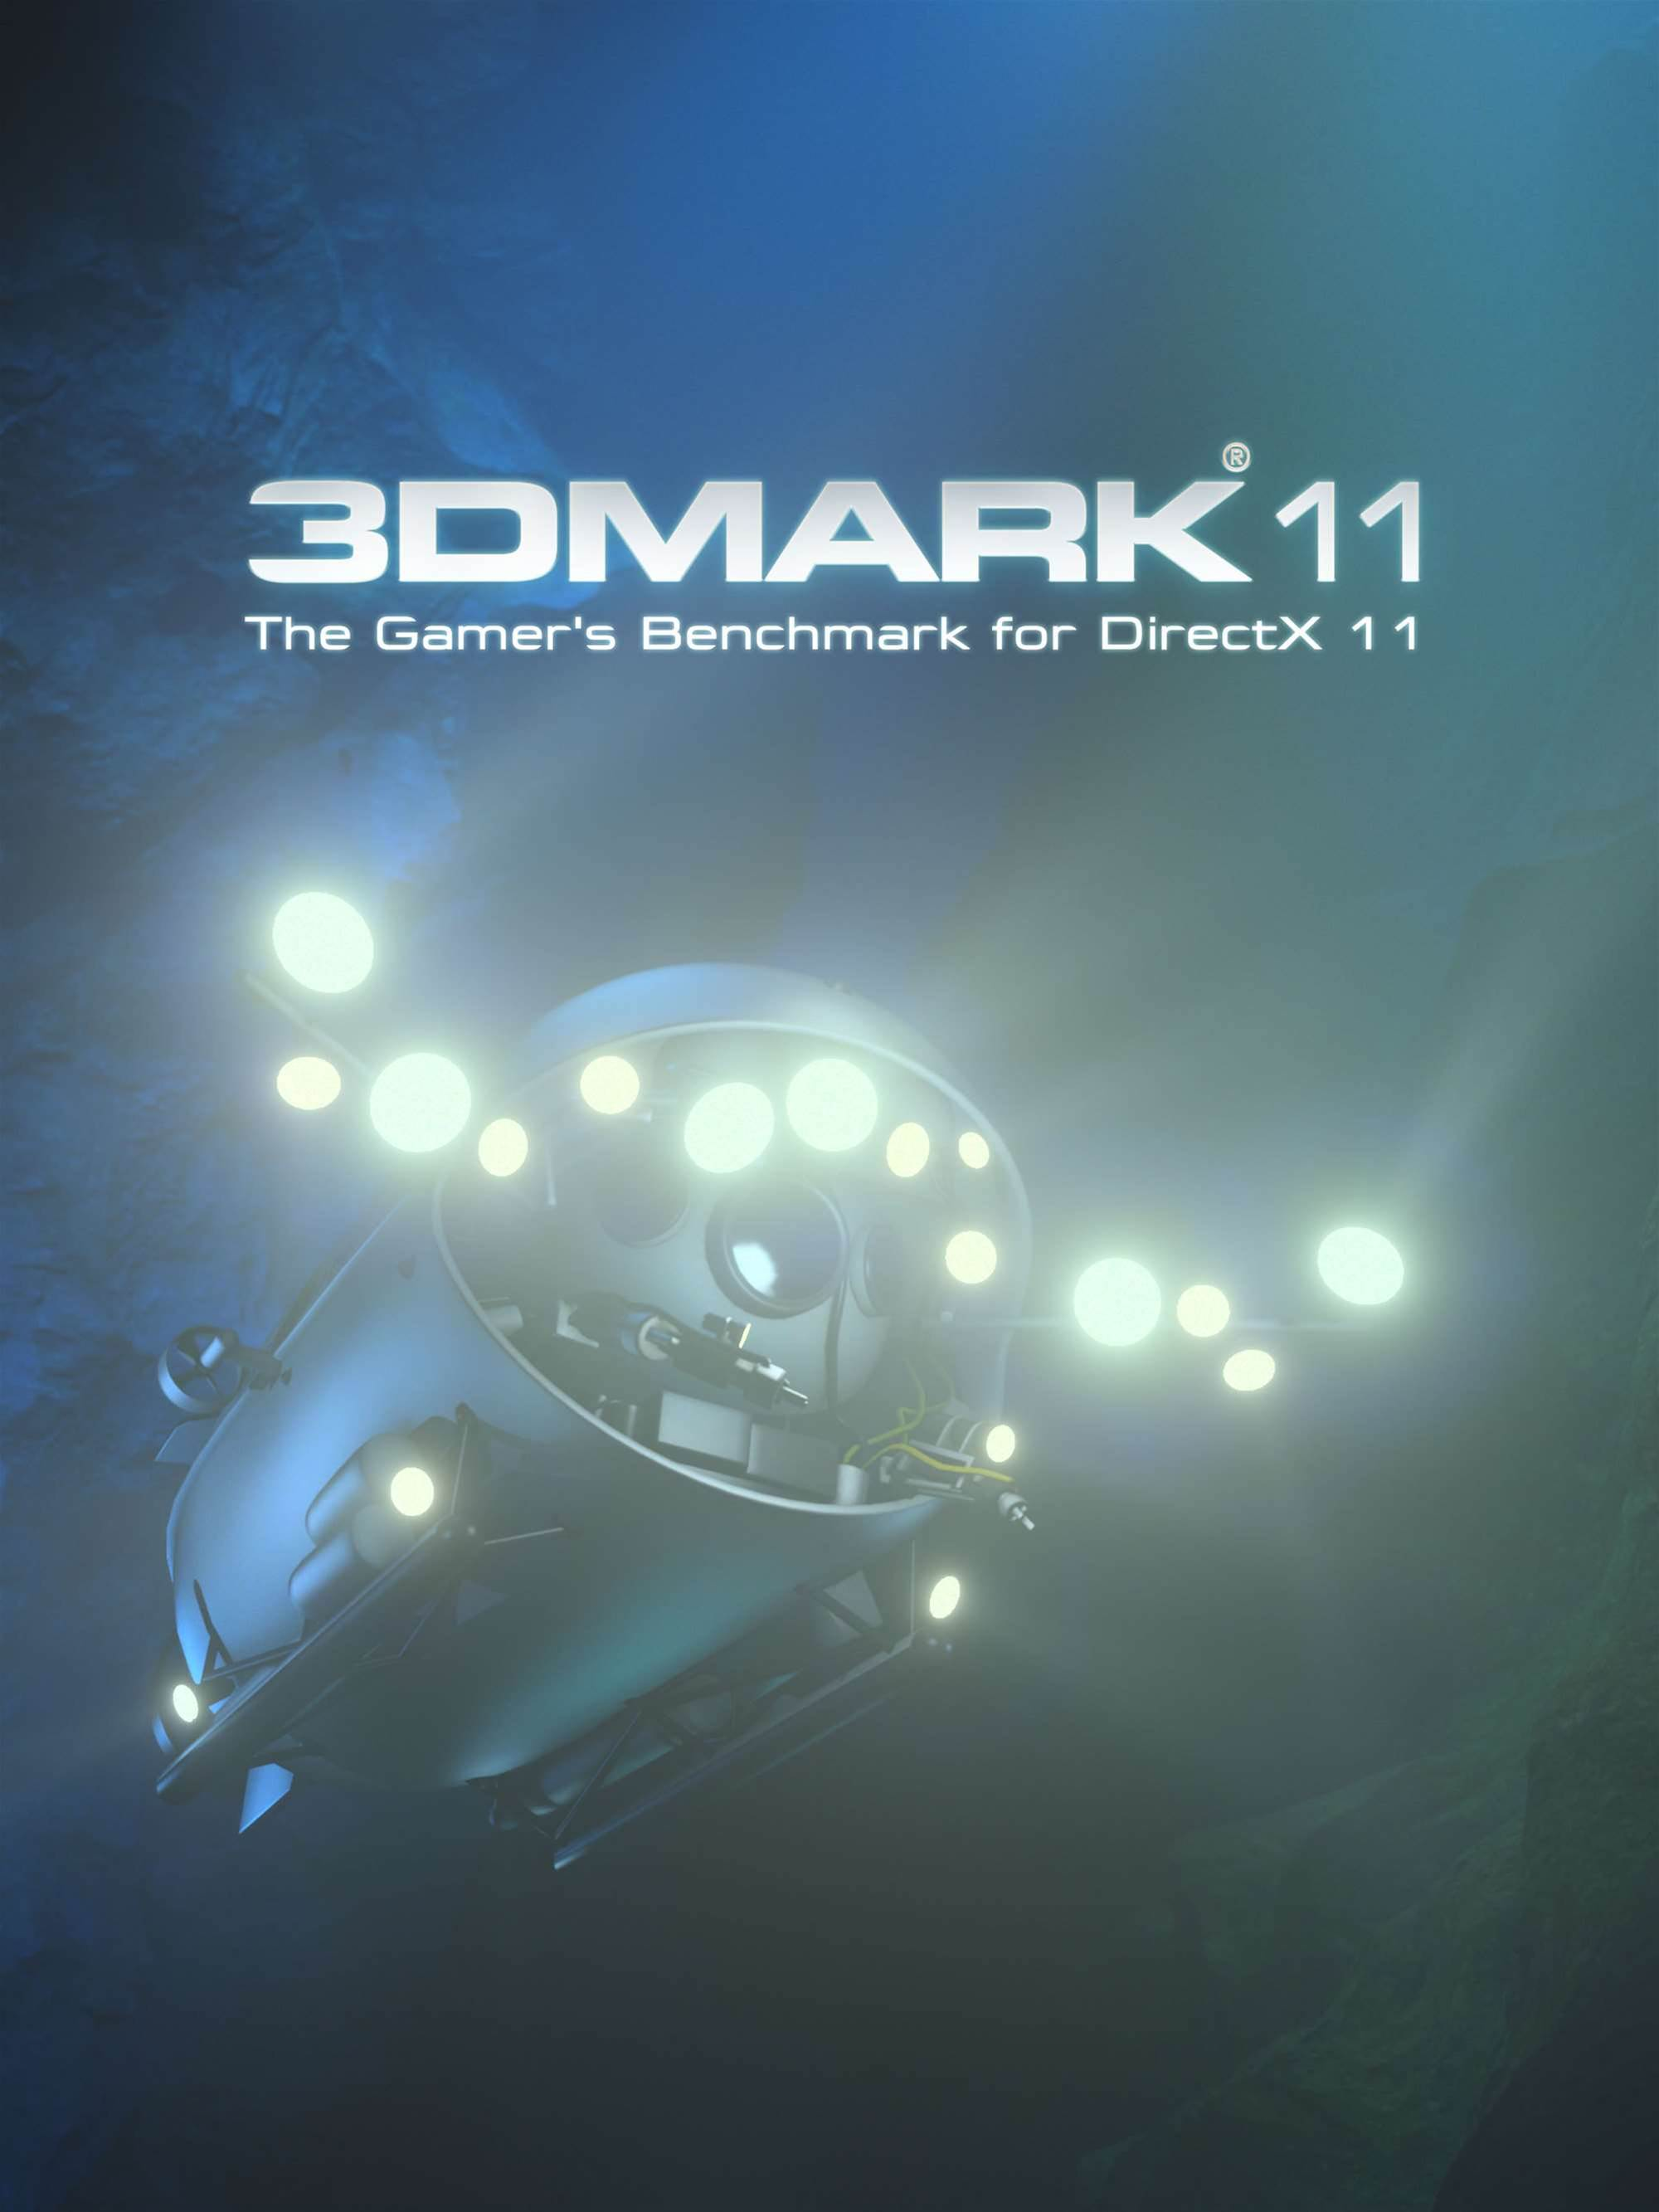 Futuremark's next-gen 3DMark 11 benchmark announced!